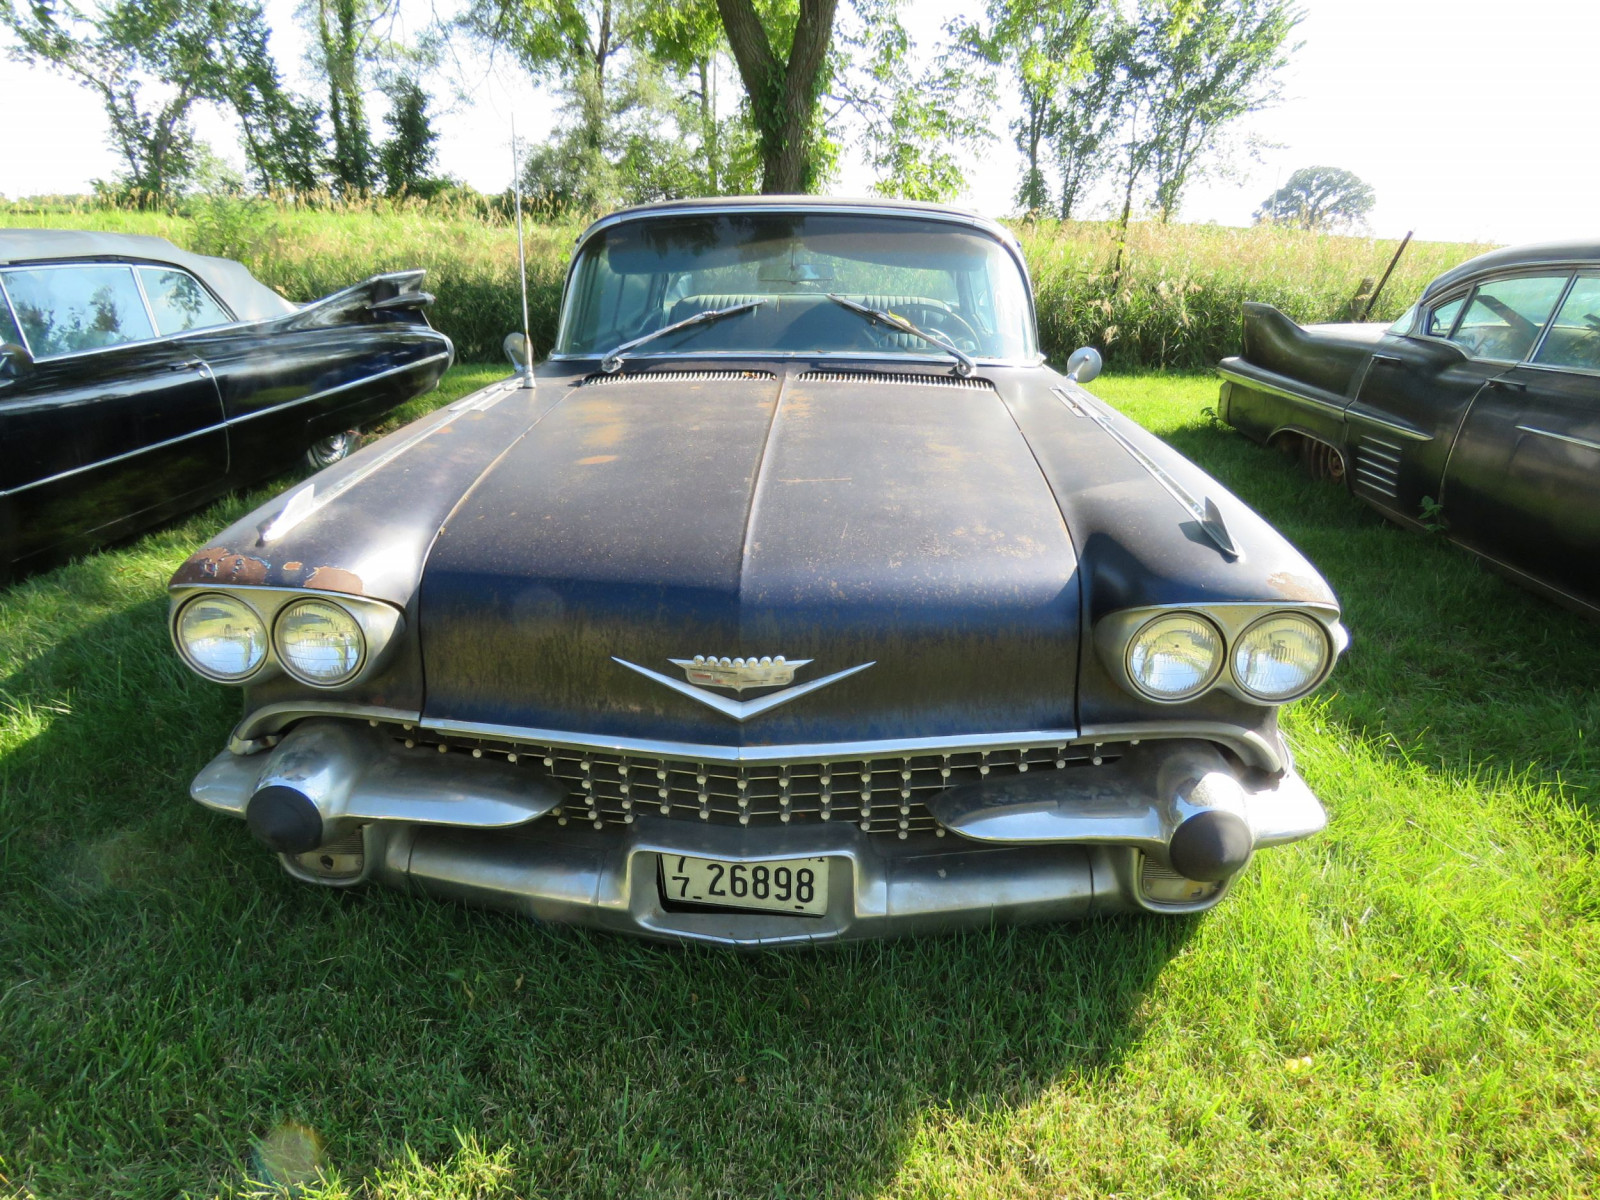 1958 Cadillac Fleetwood 60 Series 4dr HT - Image 2